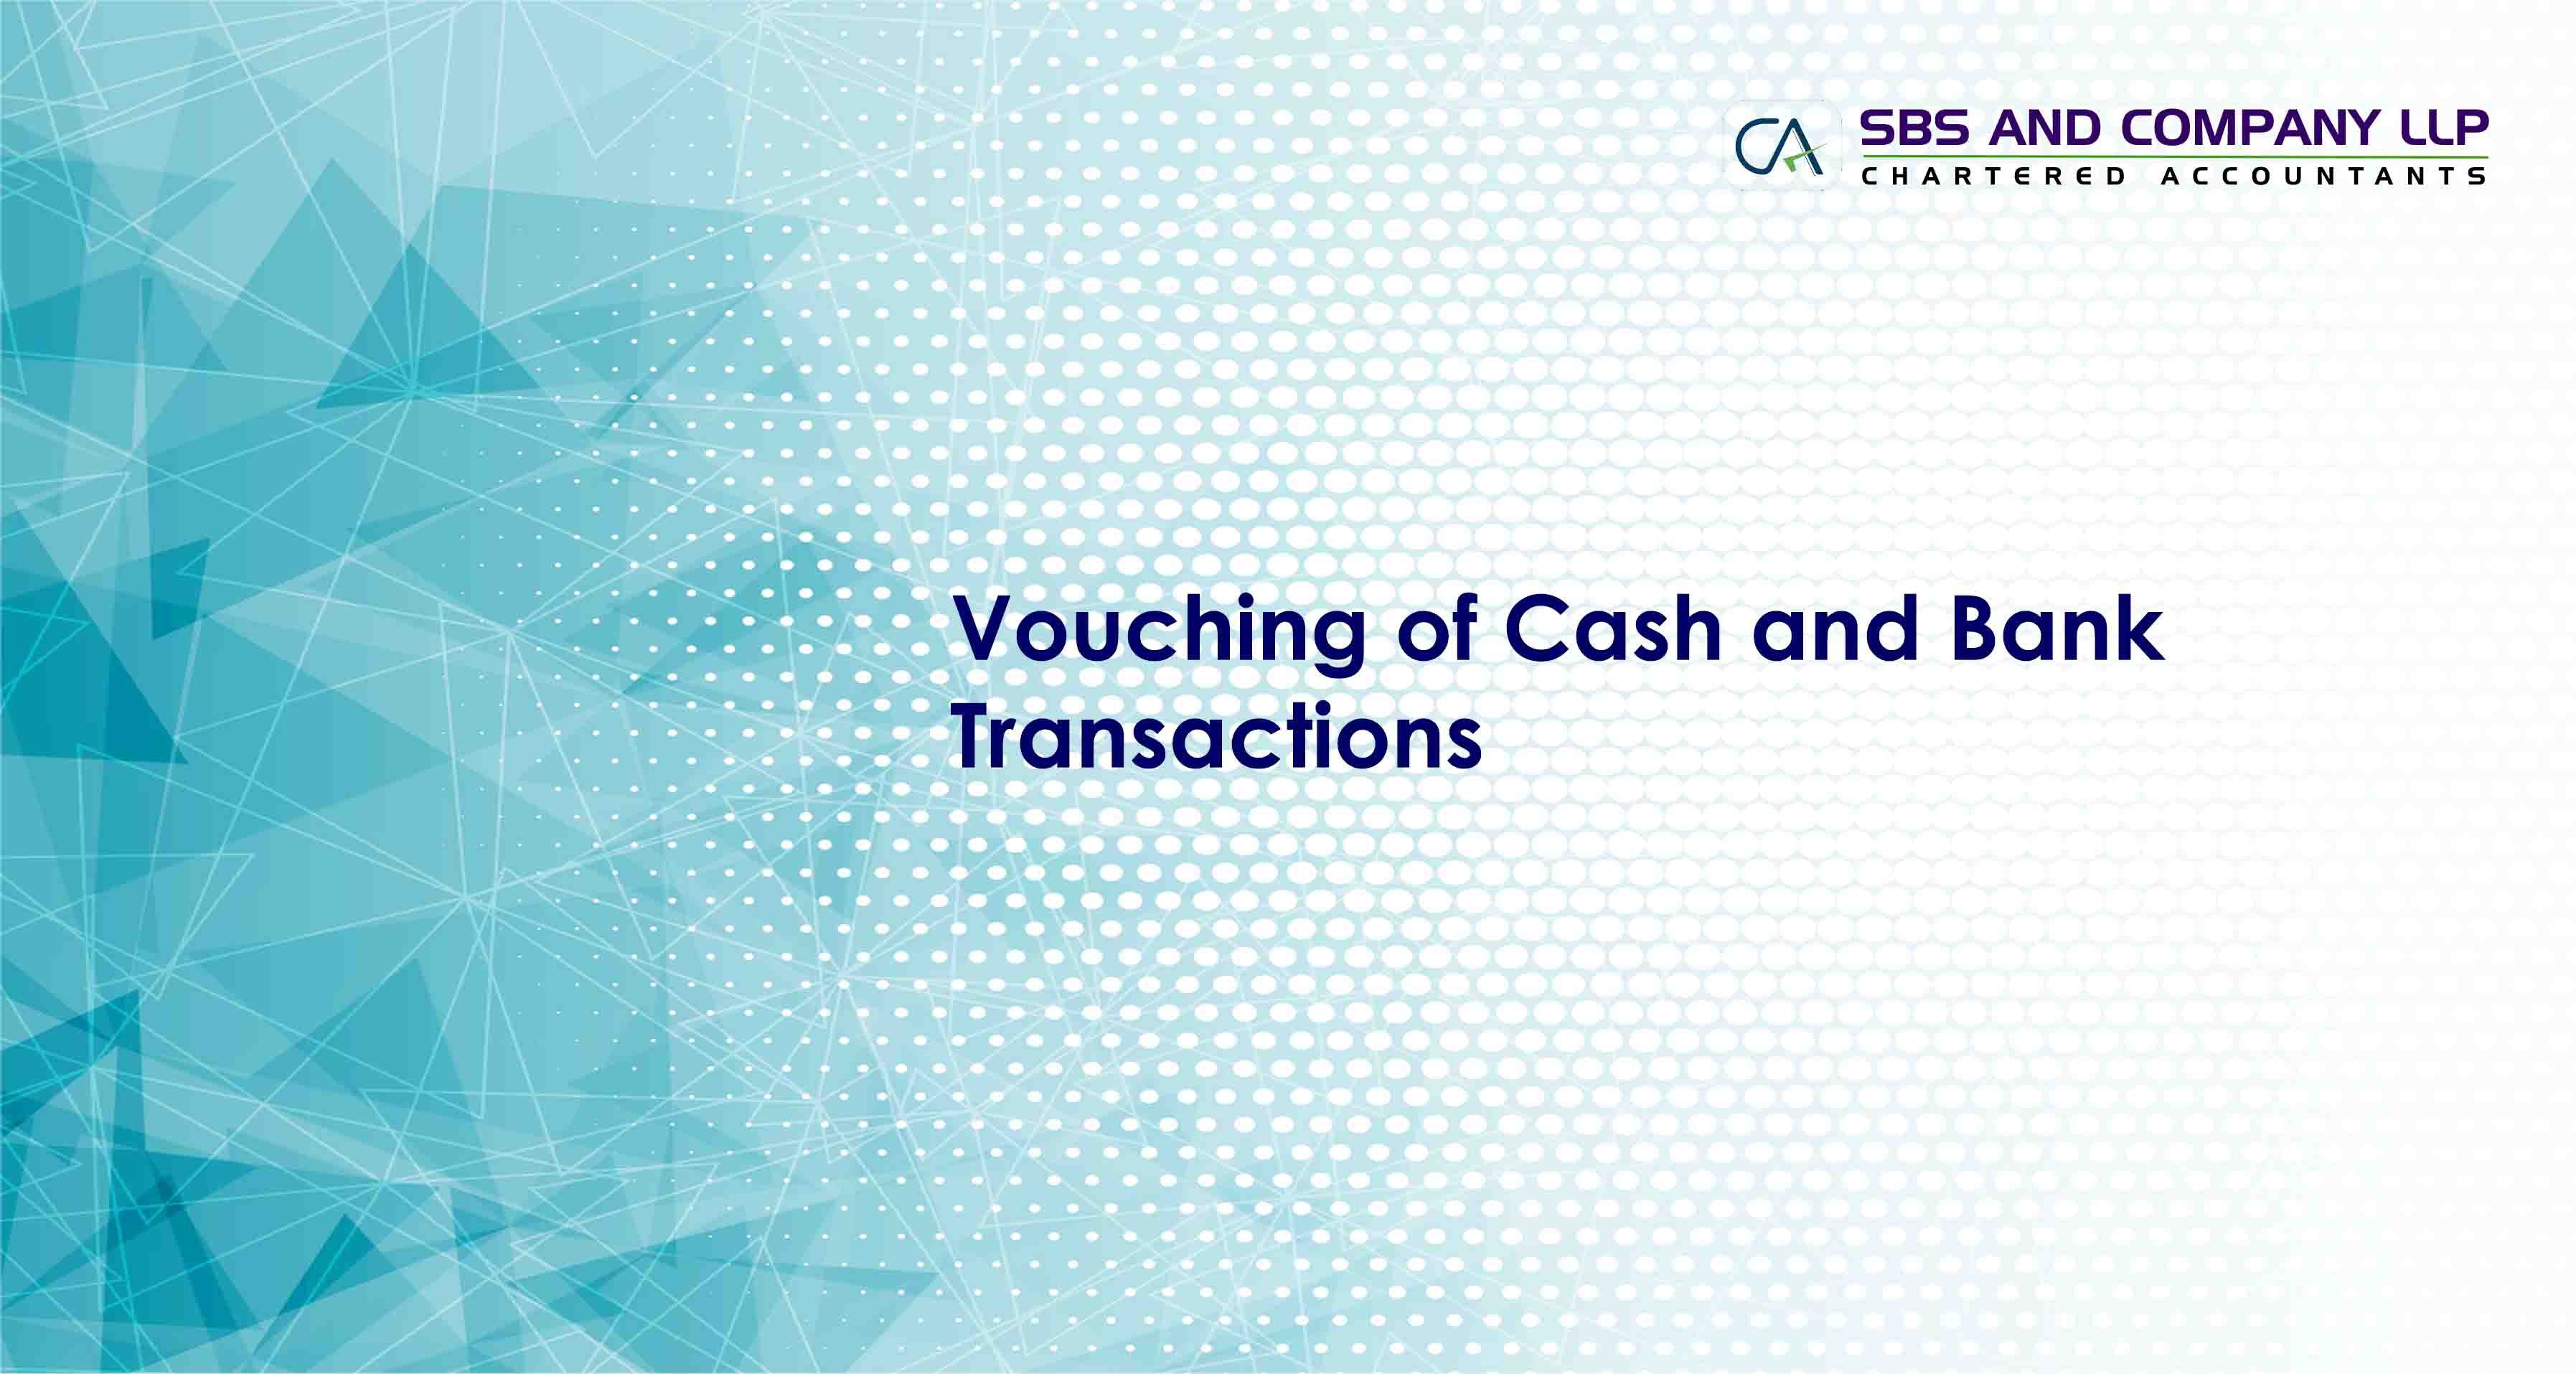 Vouching of Cash and Bank Transactions